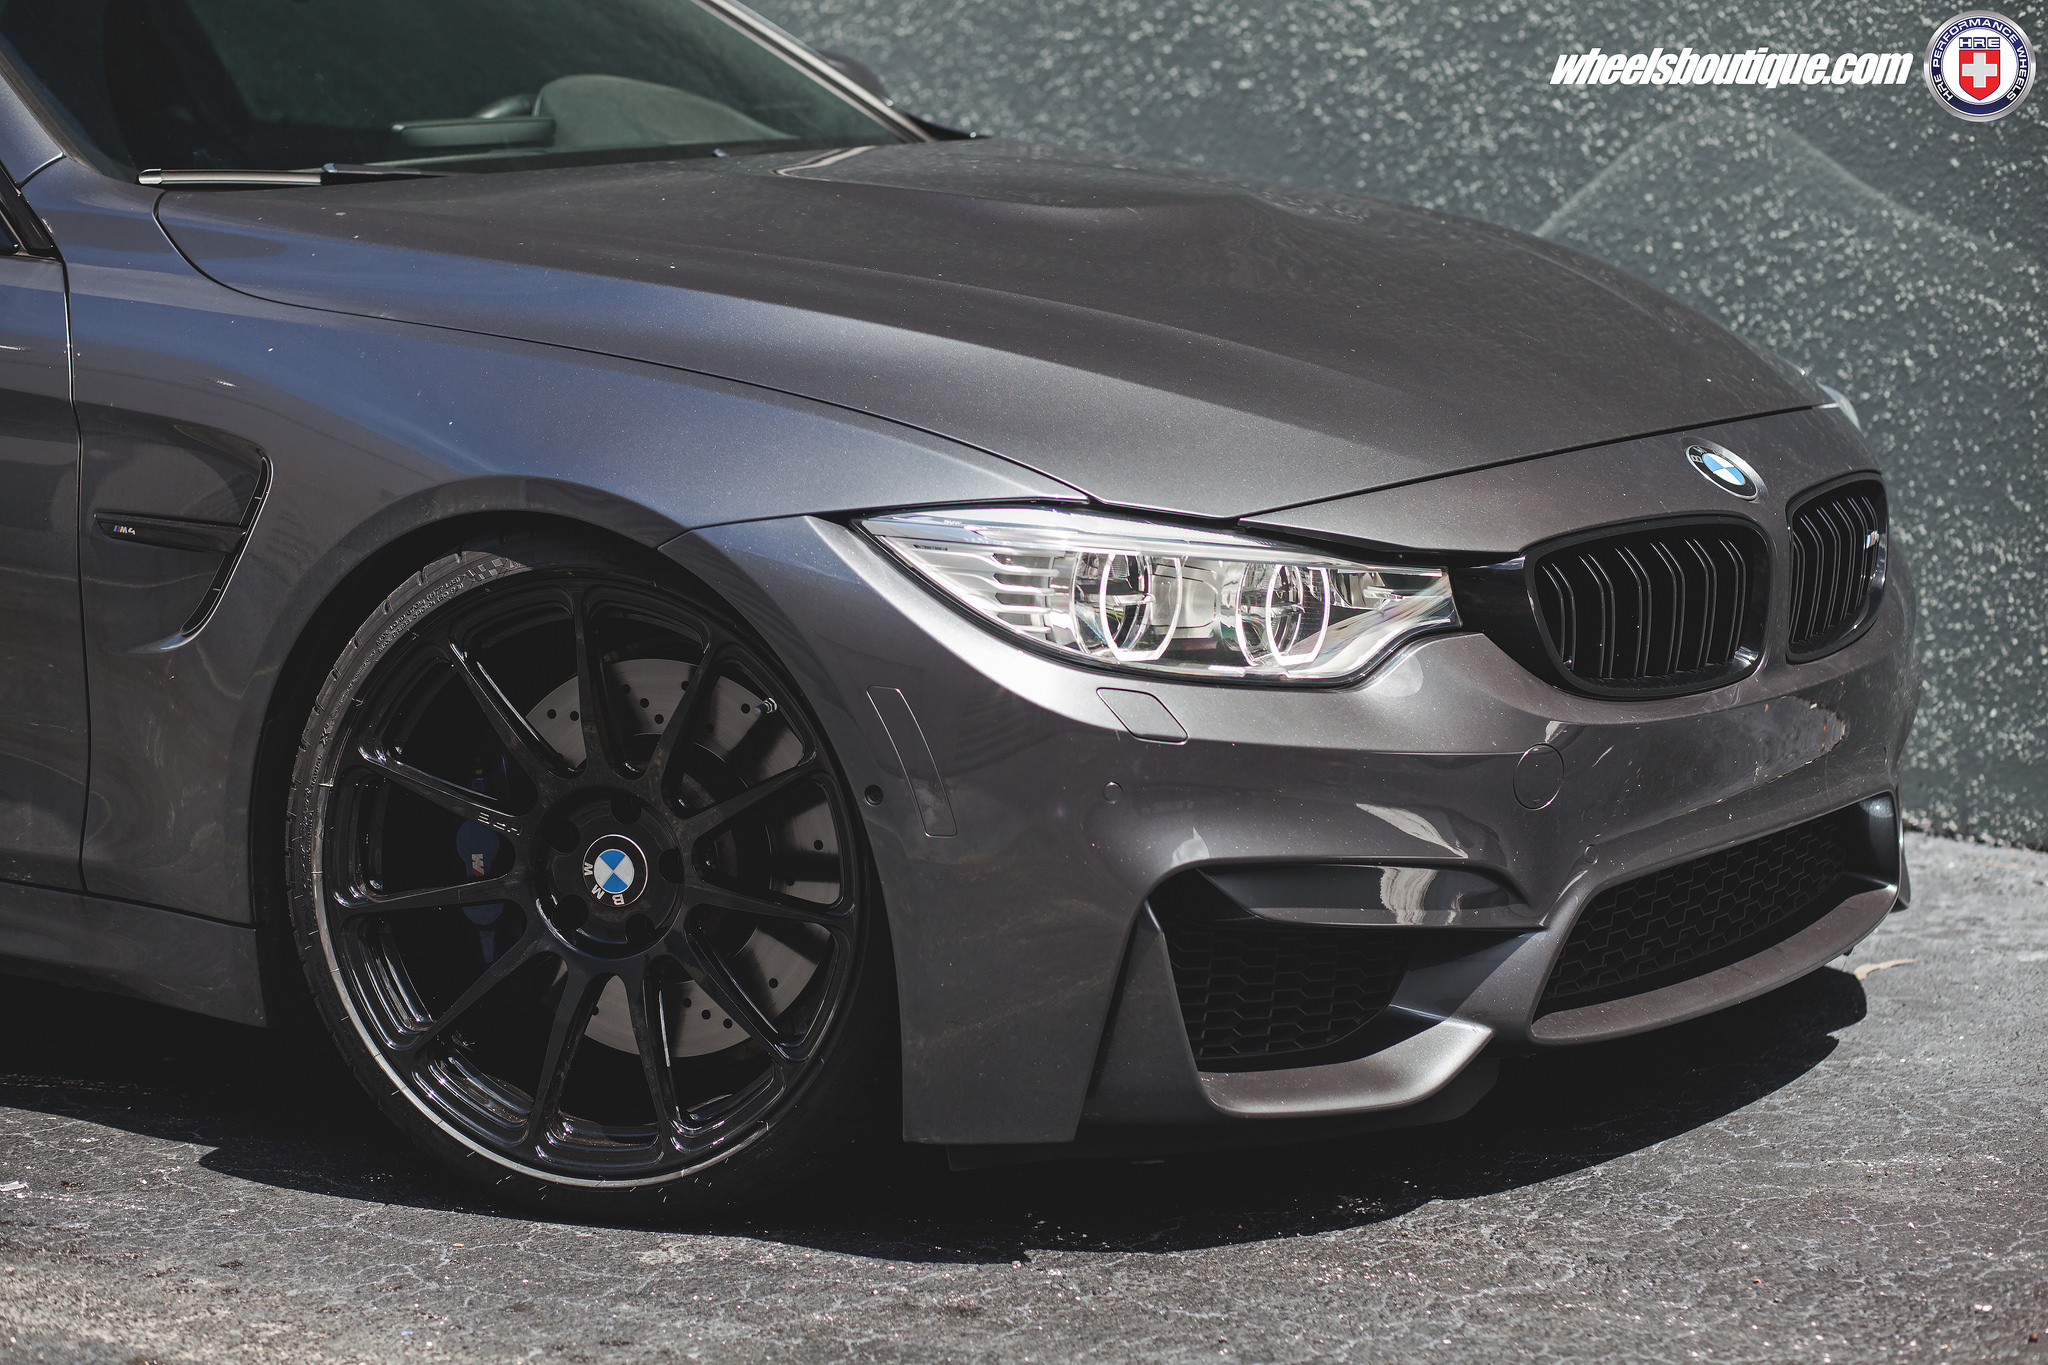 BMW M4 on HRE Wheels